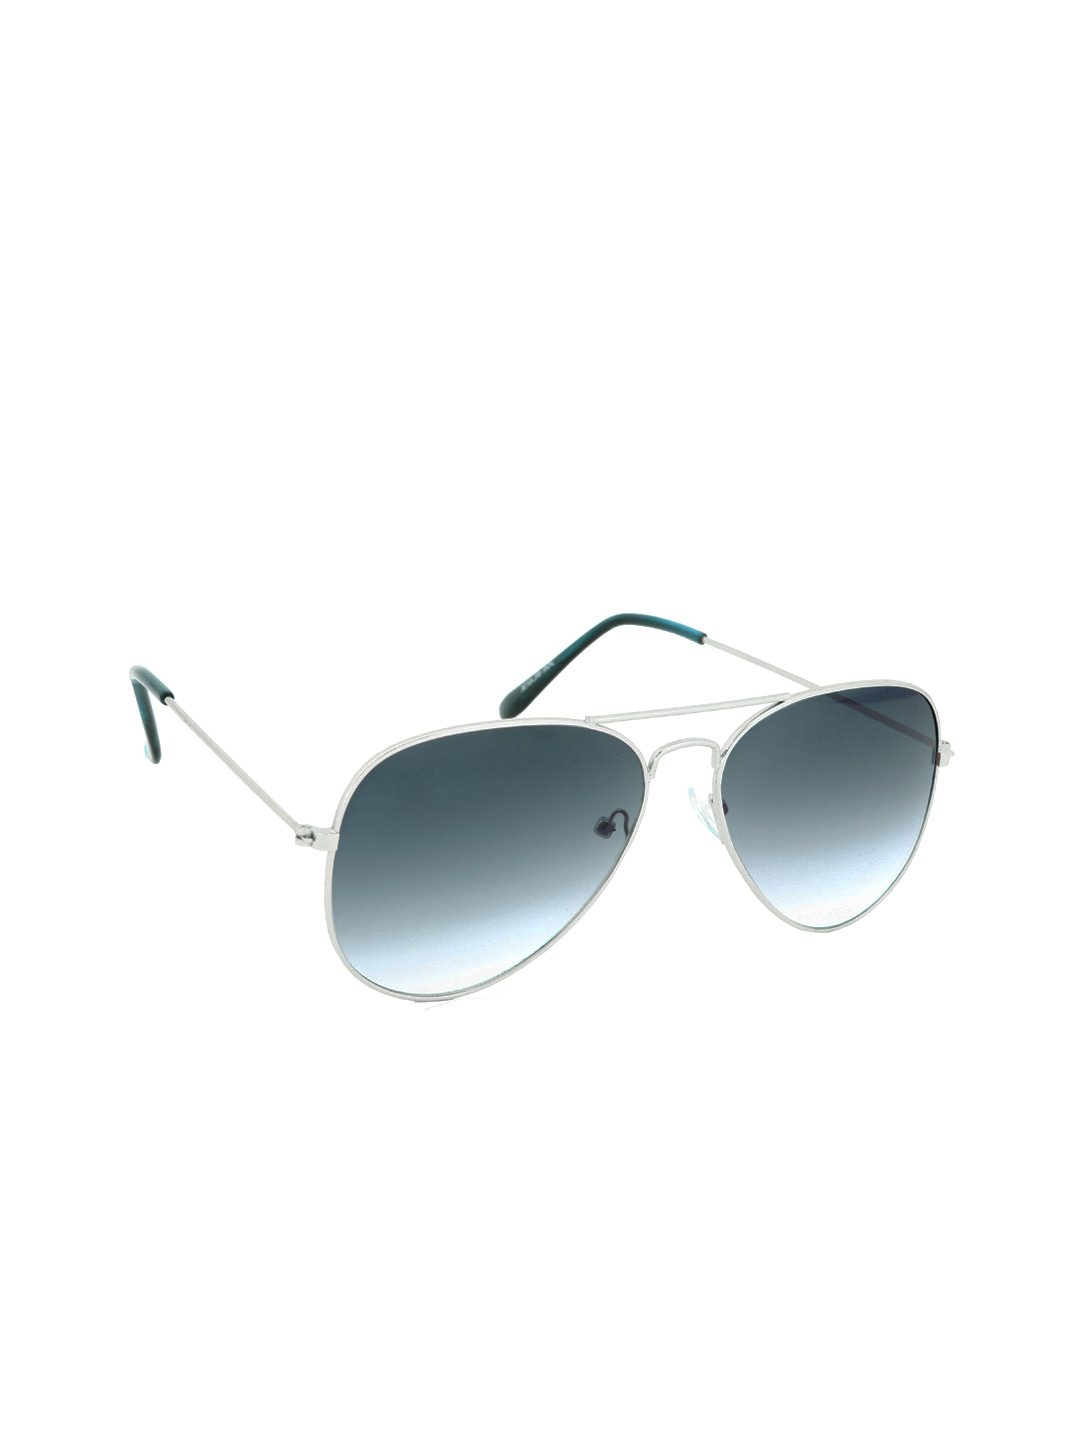 Buy Joe Black Unisex Aviator Sunglasses at Rs.599